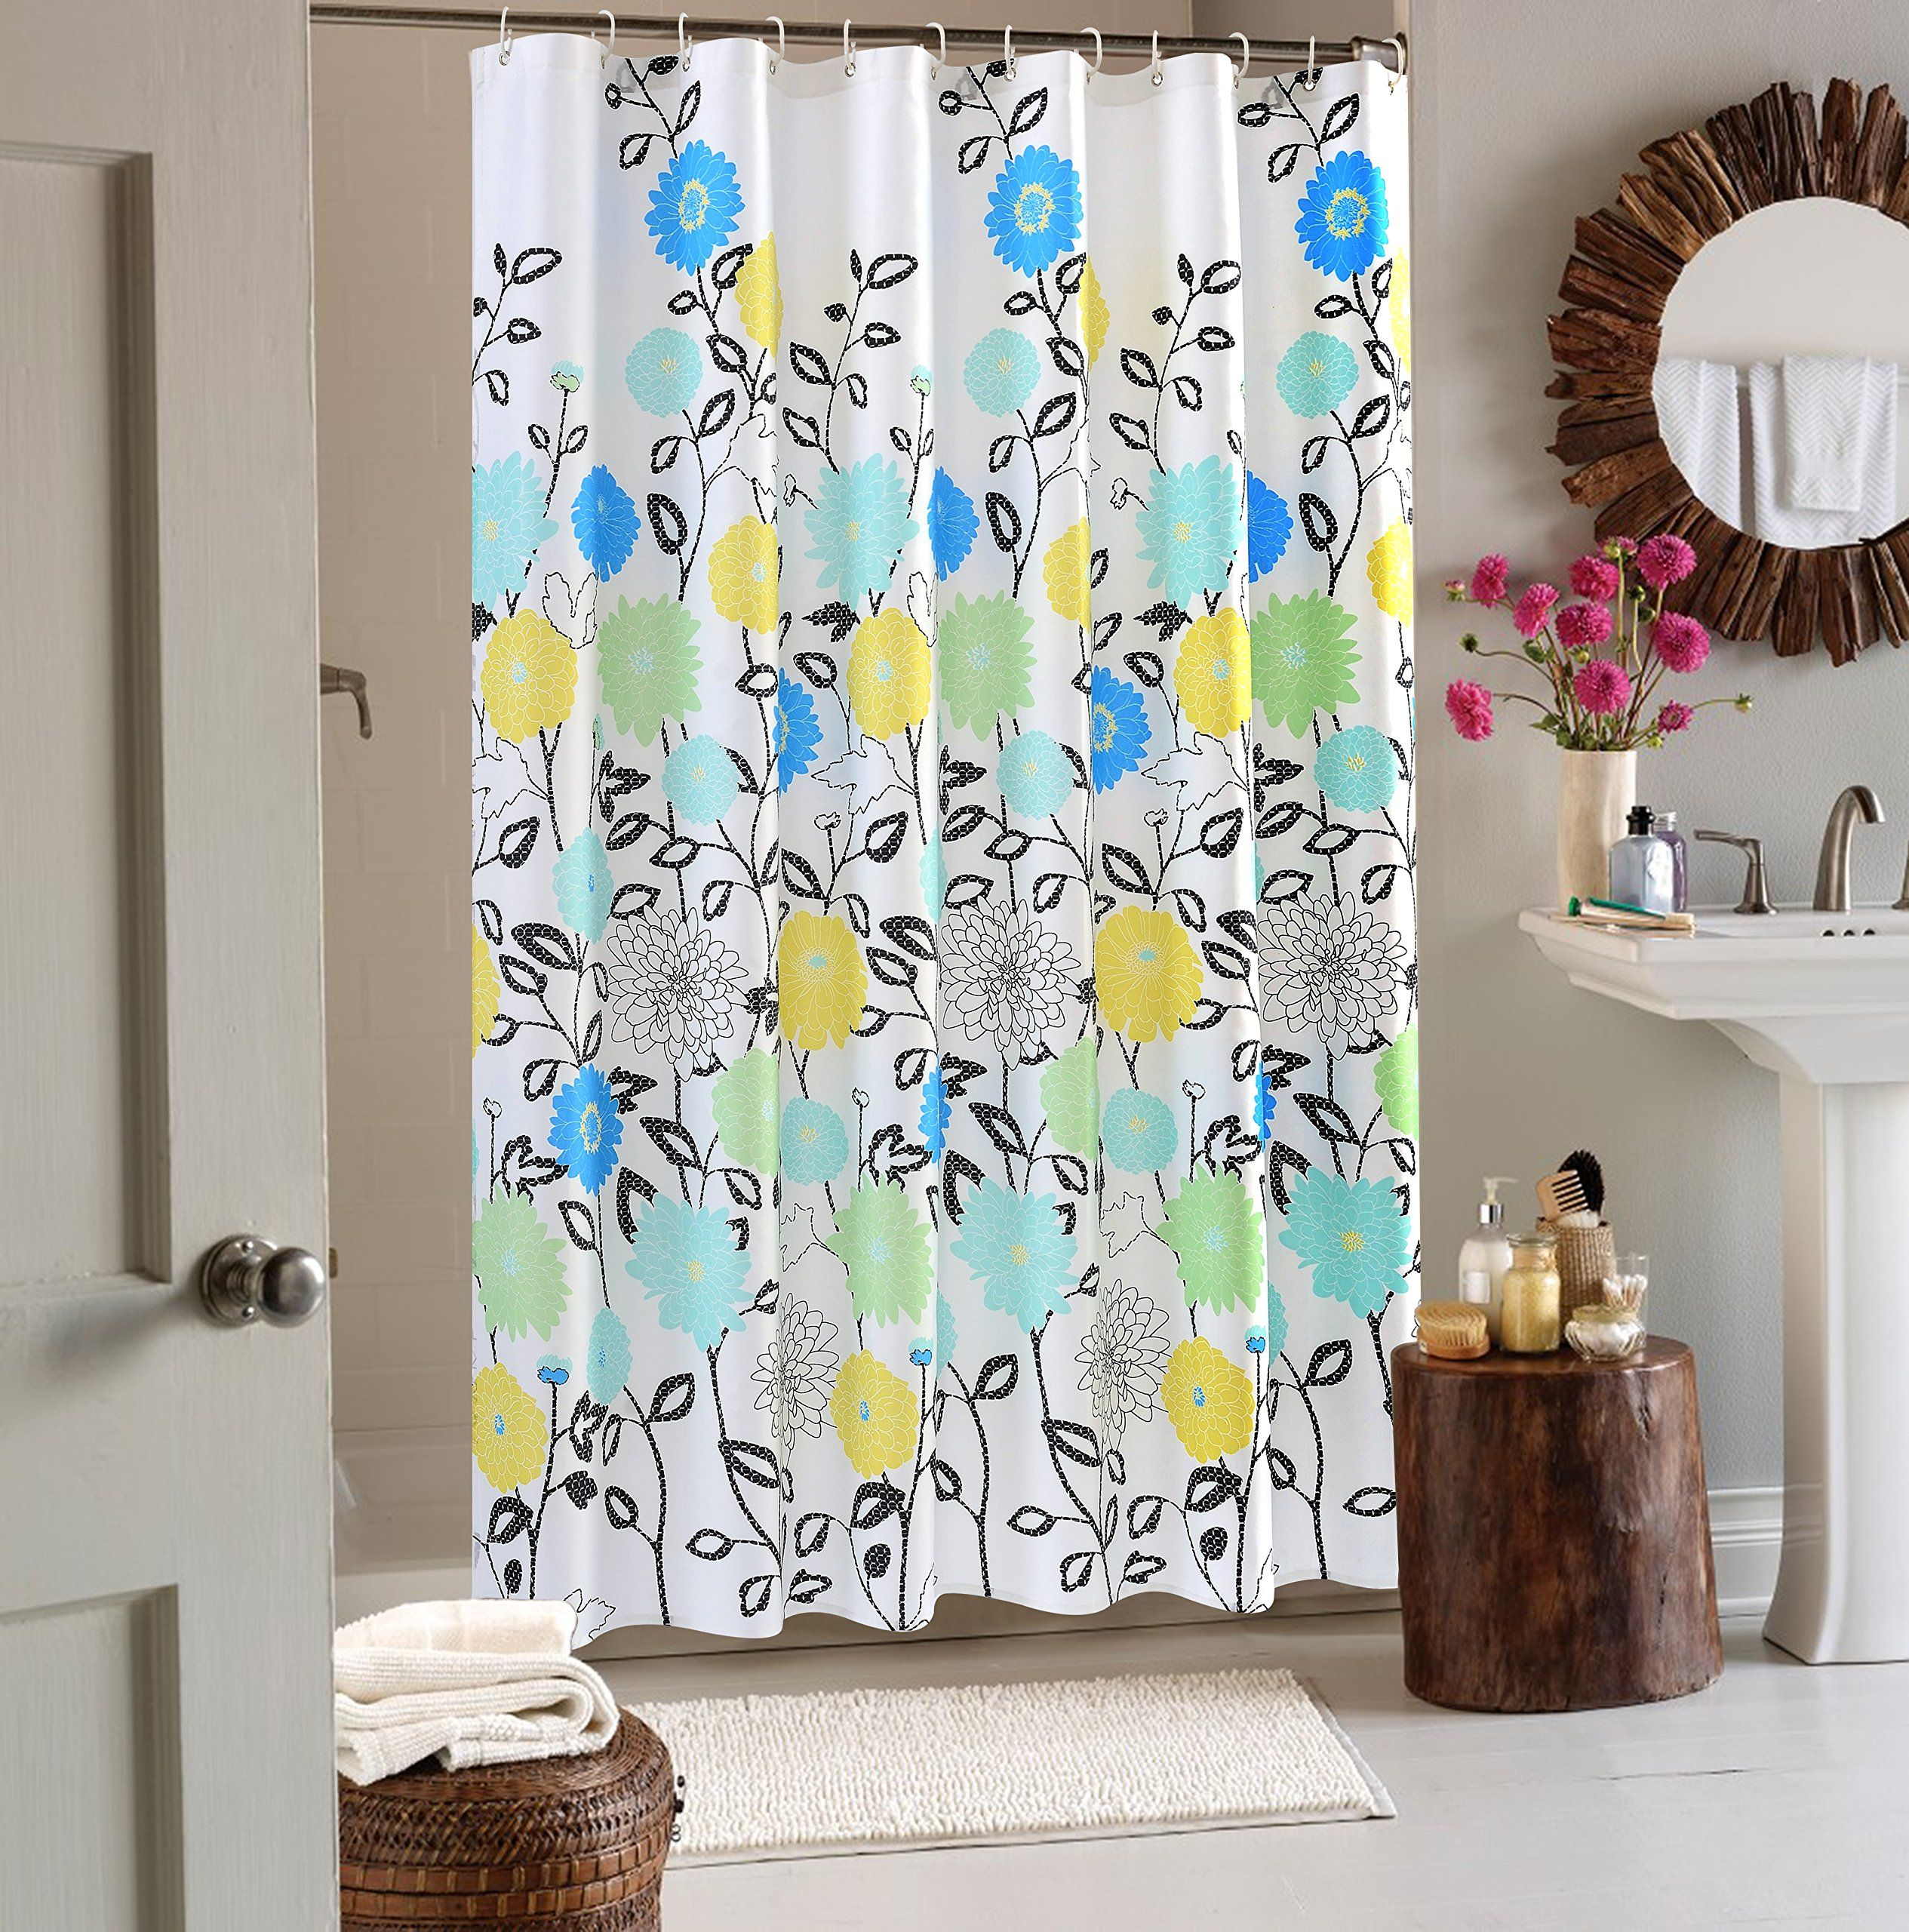 Exceptional Floral Fabric Shower Curtains #21 - Wimaha Latest Floral Fabric Shower Curtain Mildew Resistant Standard  Waterproof Bath Tub Shower Curtain Water Repellent